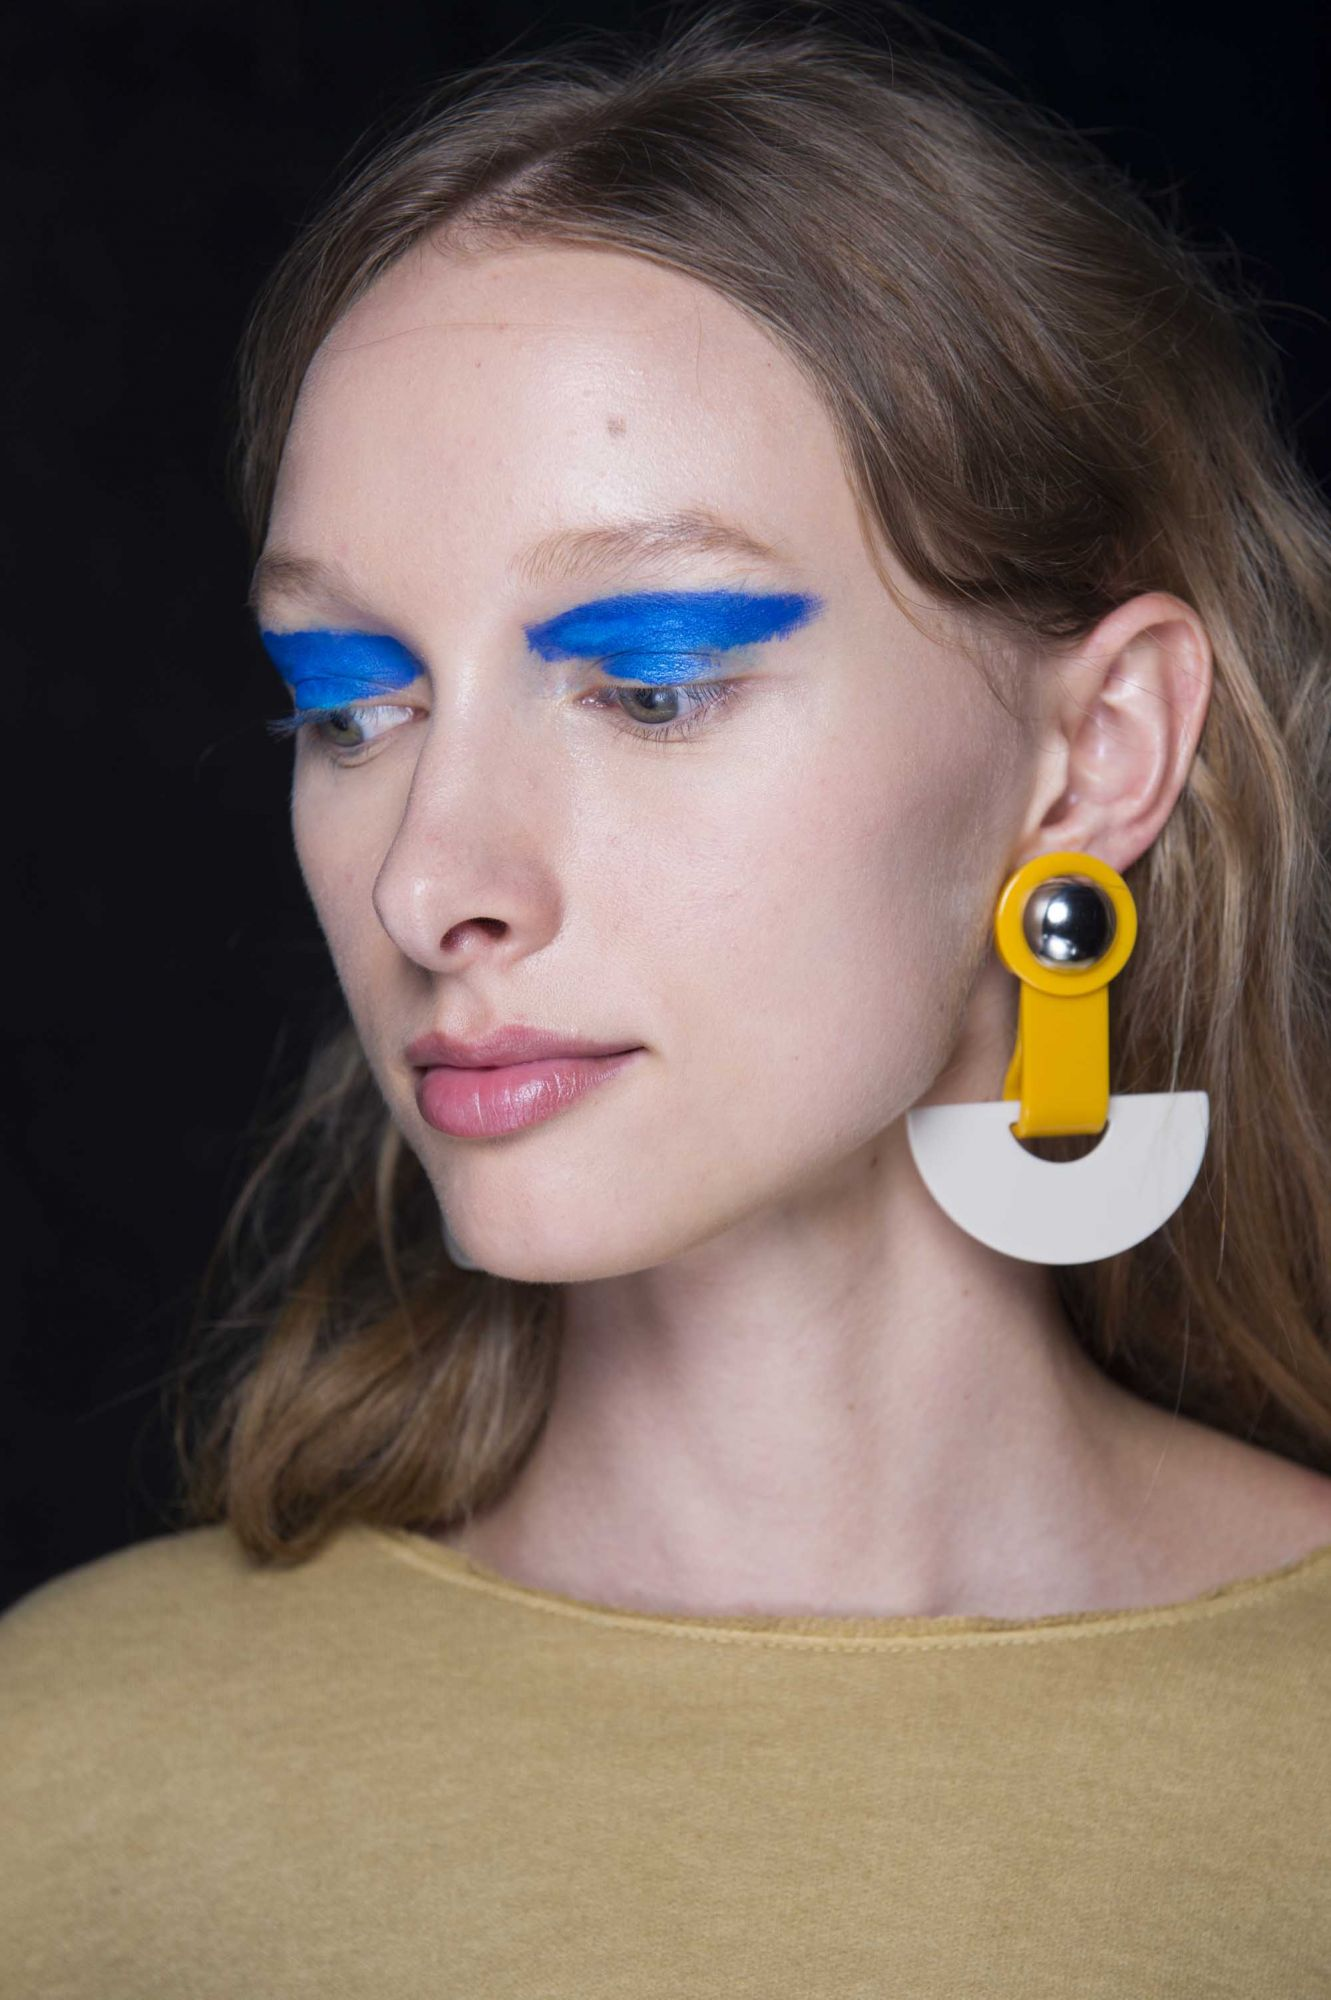 3 Artsy Eye Make-up Looks To Rock This Month